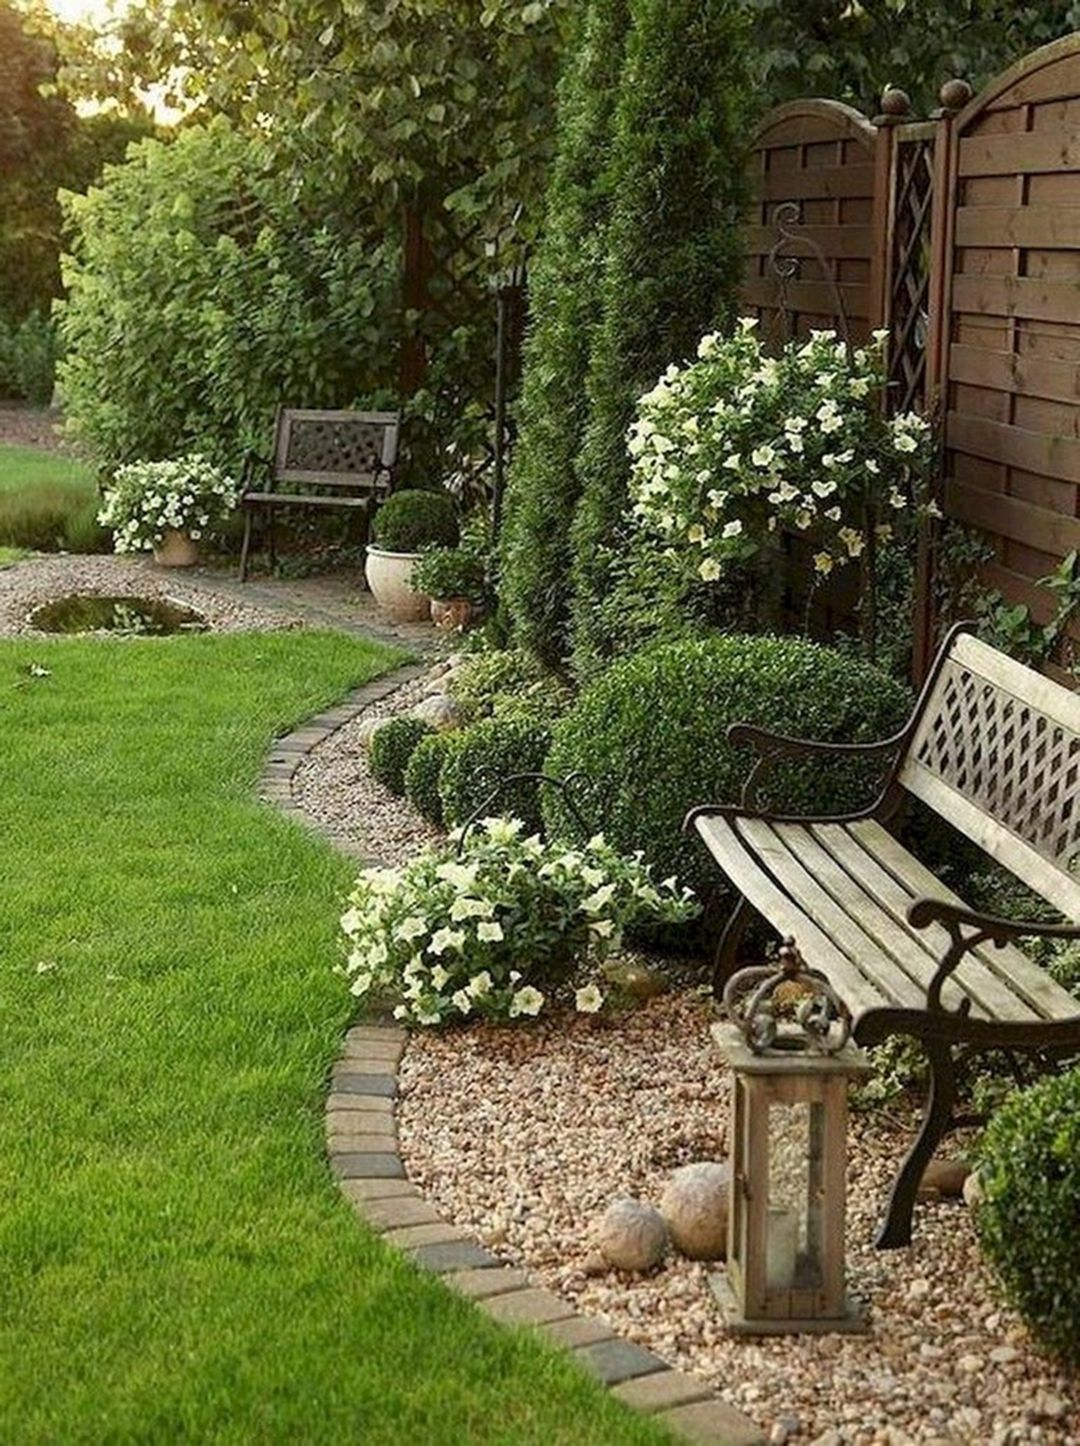 15 Amazing Front Yard Landscaping Ideas To Make Your Home More Awesome Decor It S Backyard Landscape Architecture Rock Garden Landscaping Front Yard Landscaping Design